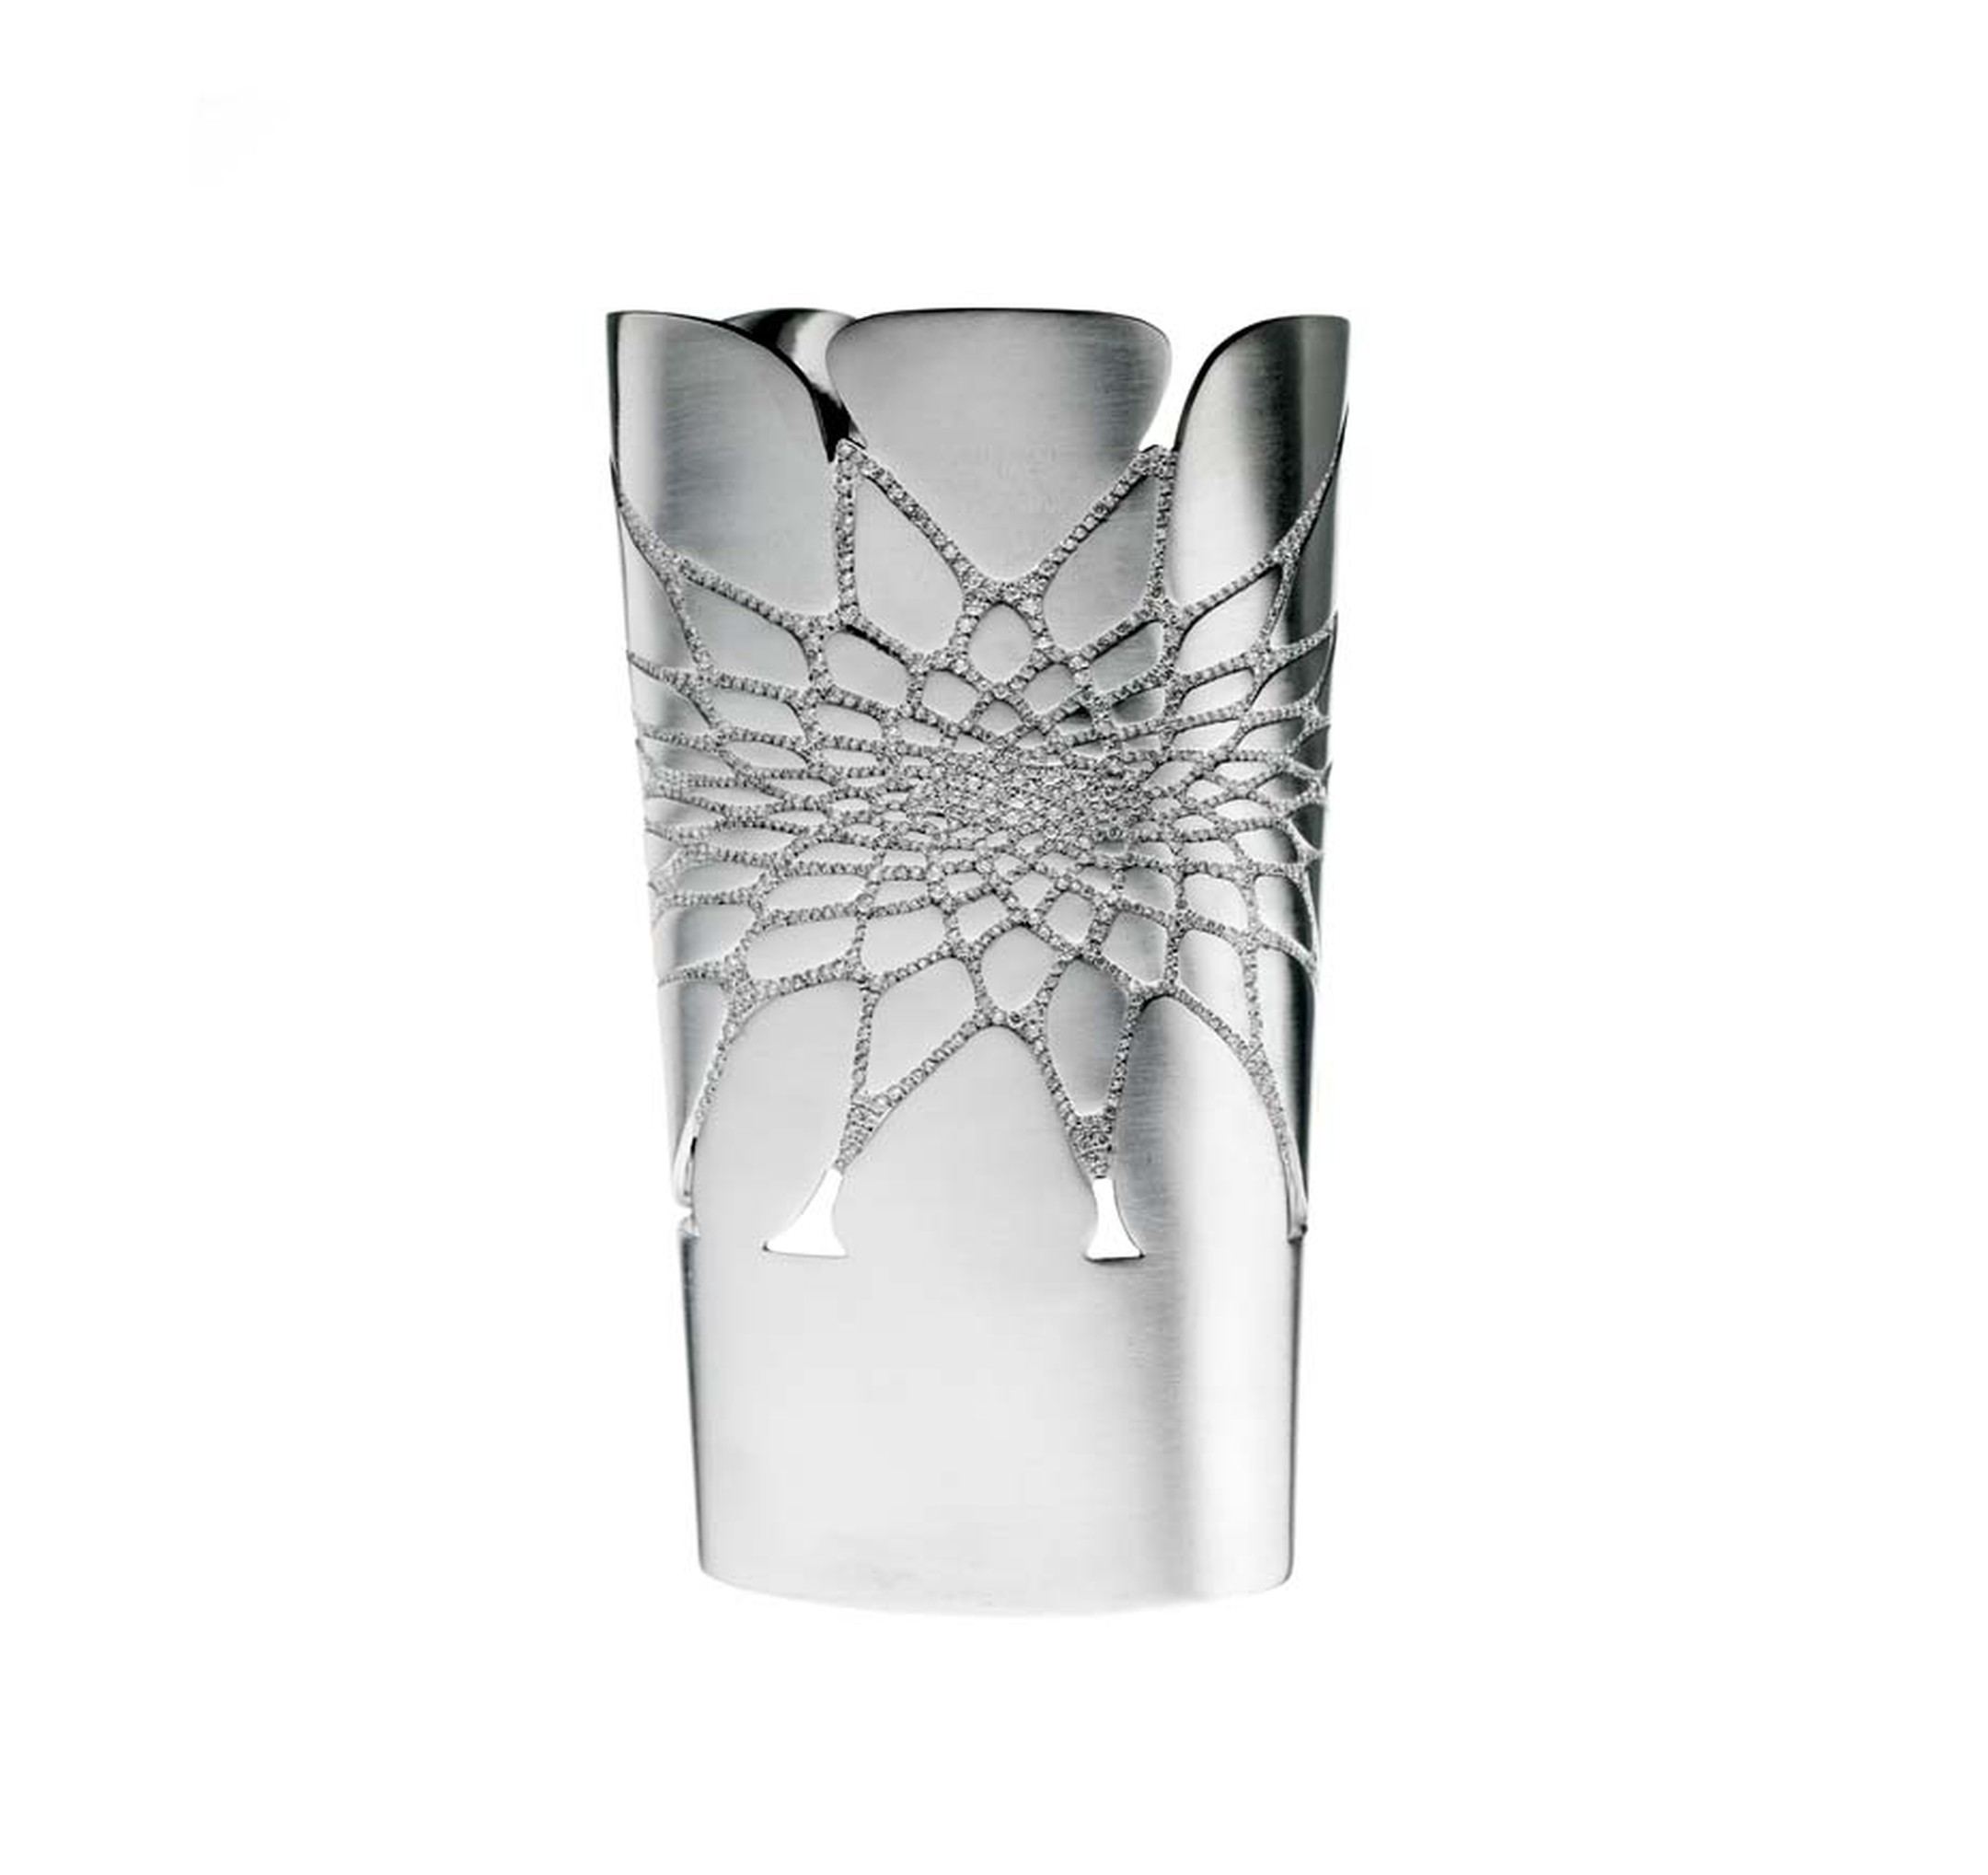 Celebrated international architect Dame Zaha Hadid has collaborated with Lebanese jewellery house Mouzannar to design a white gold cuff set with 1,048 diamonds.